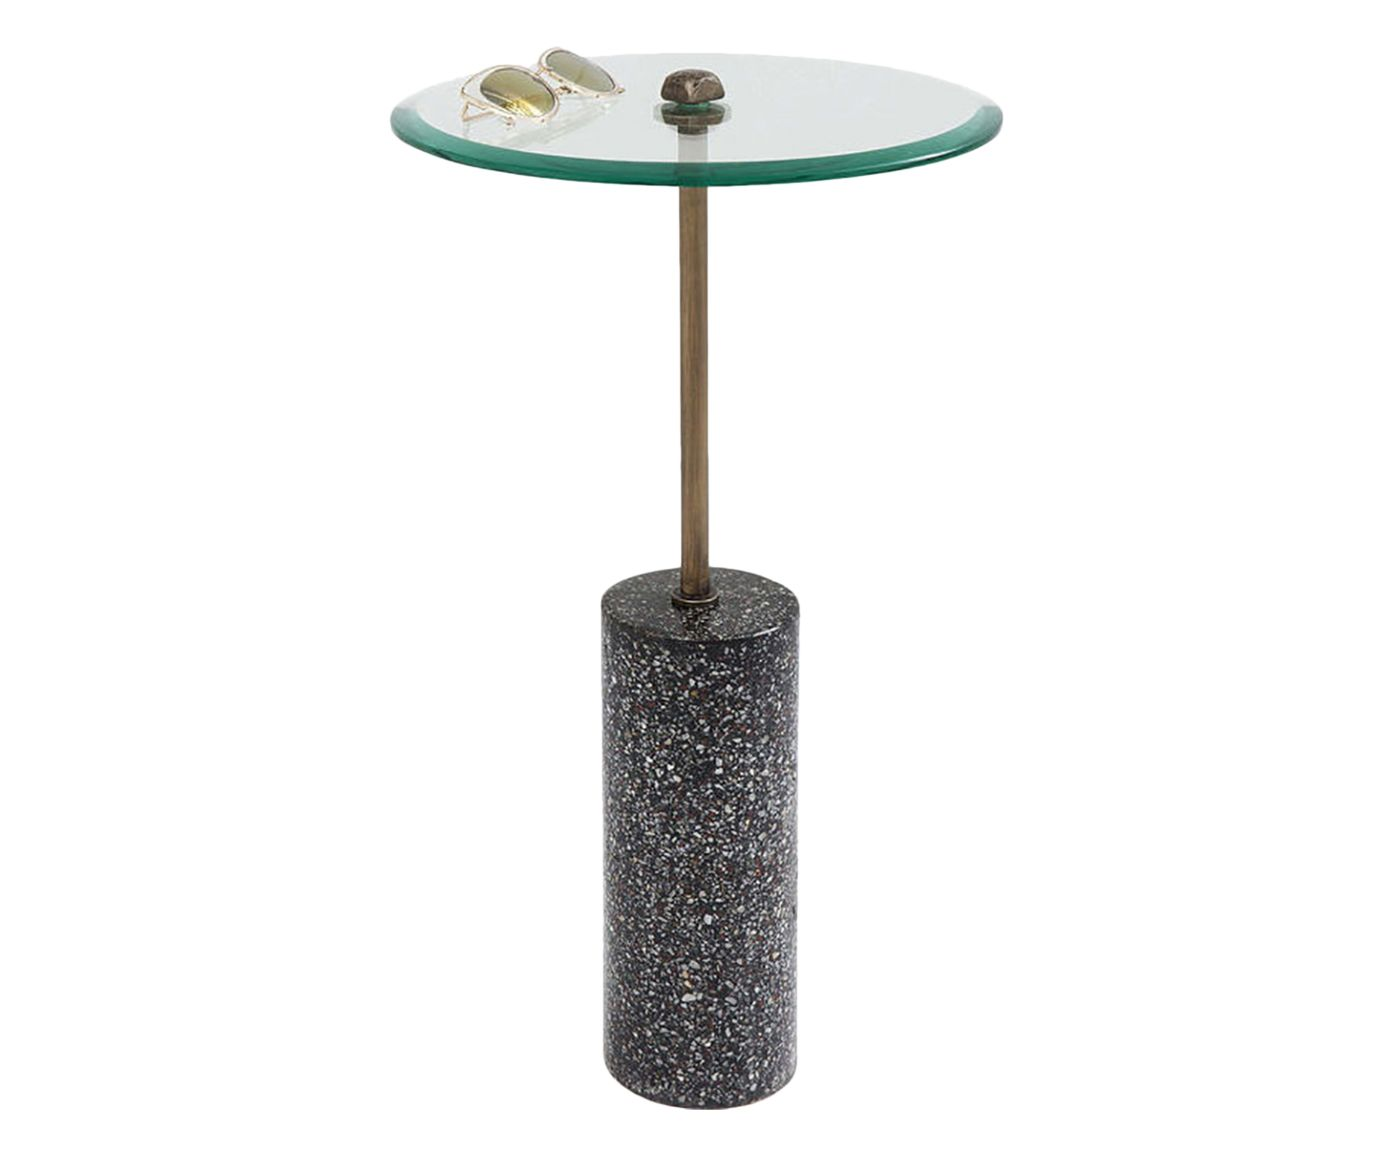 Mesa Lateral Terrazzo - 67cm | Westwing.com.br